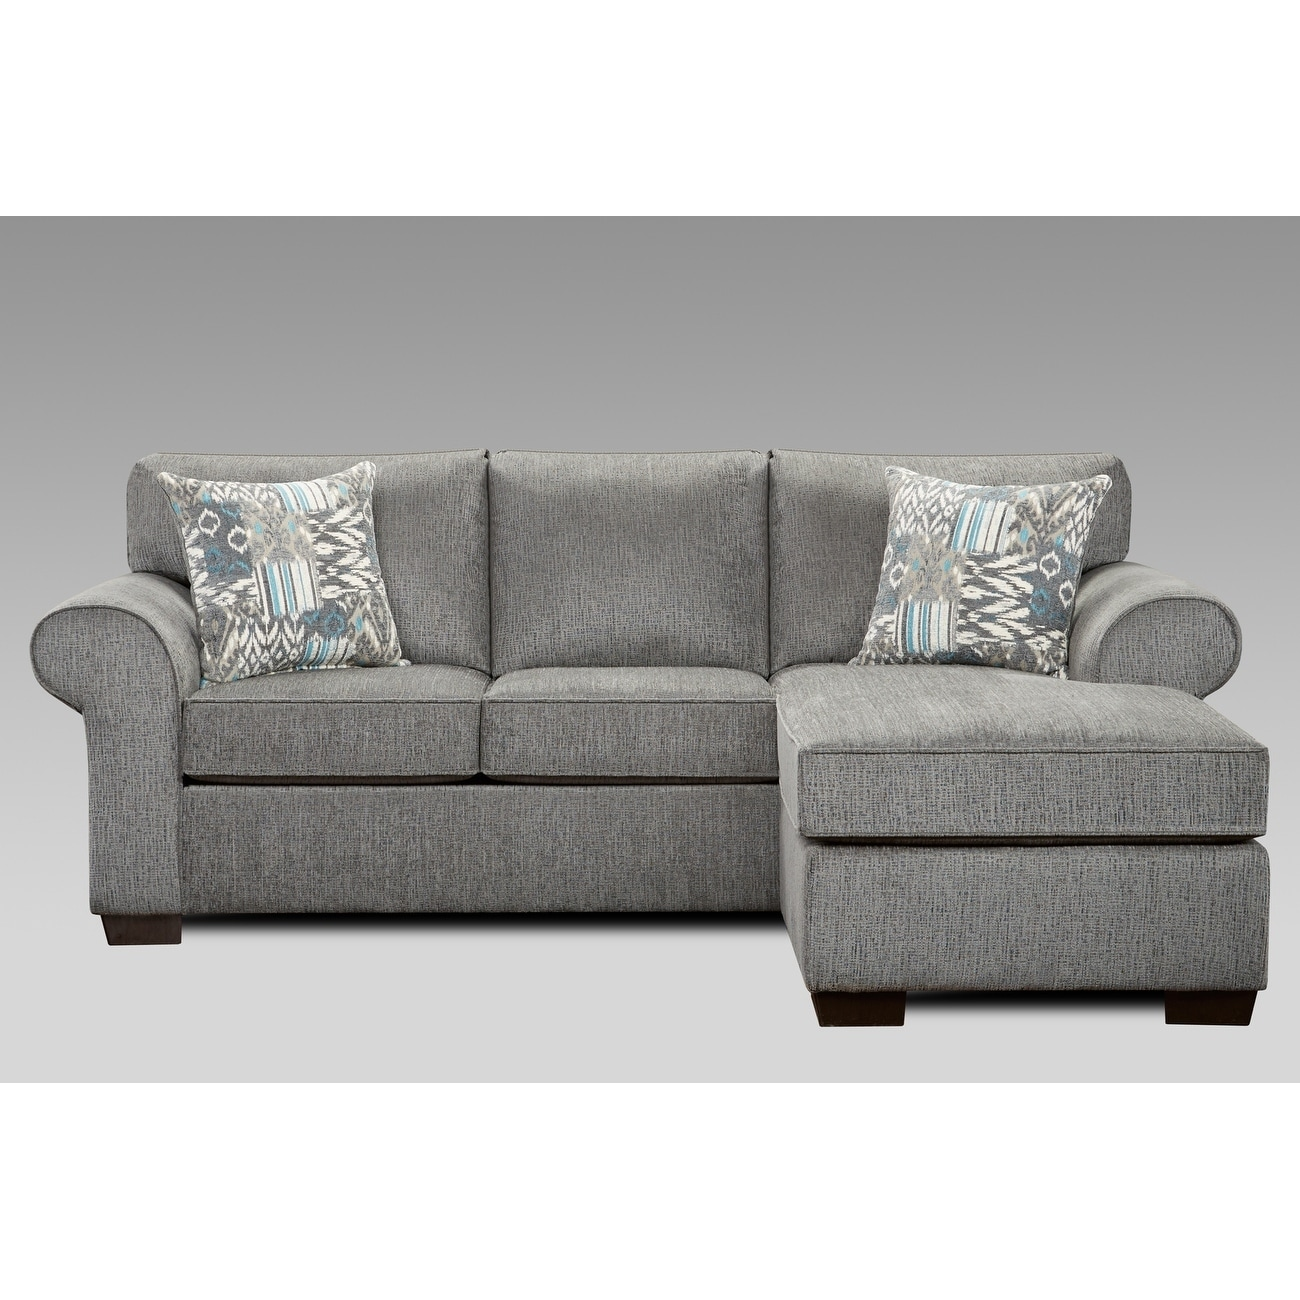 Buy Chaise, Sleeper Sofa Online at Overstock | Our Best ...